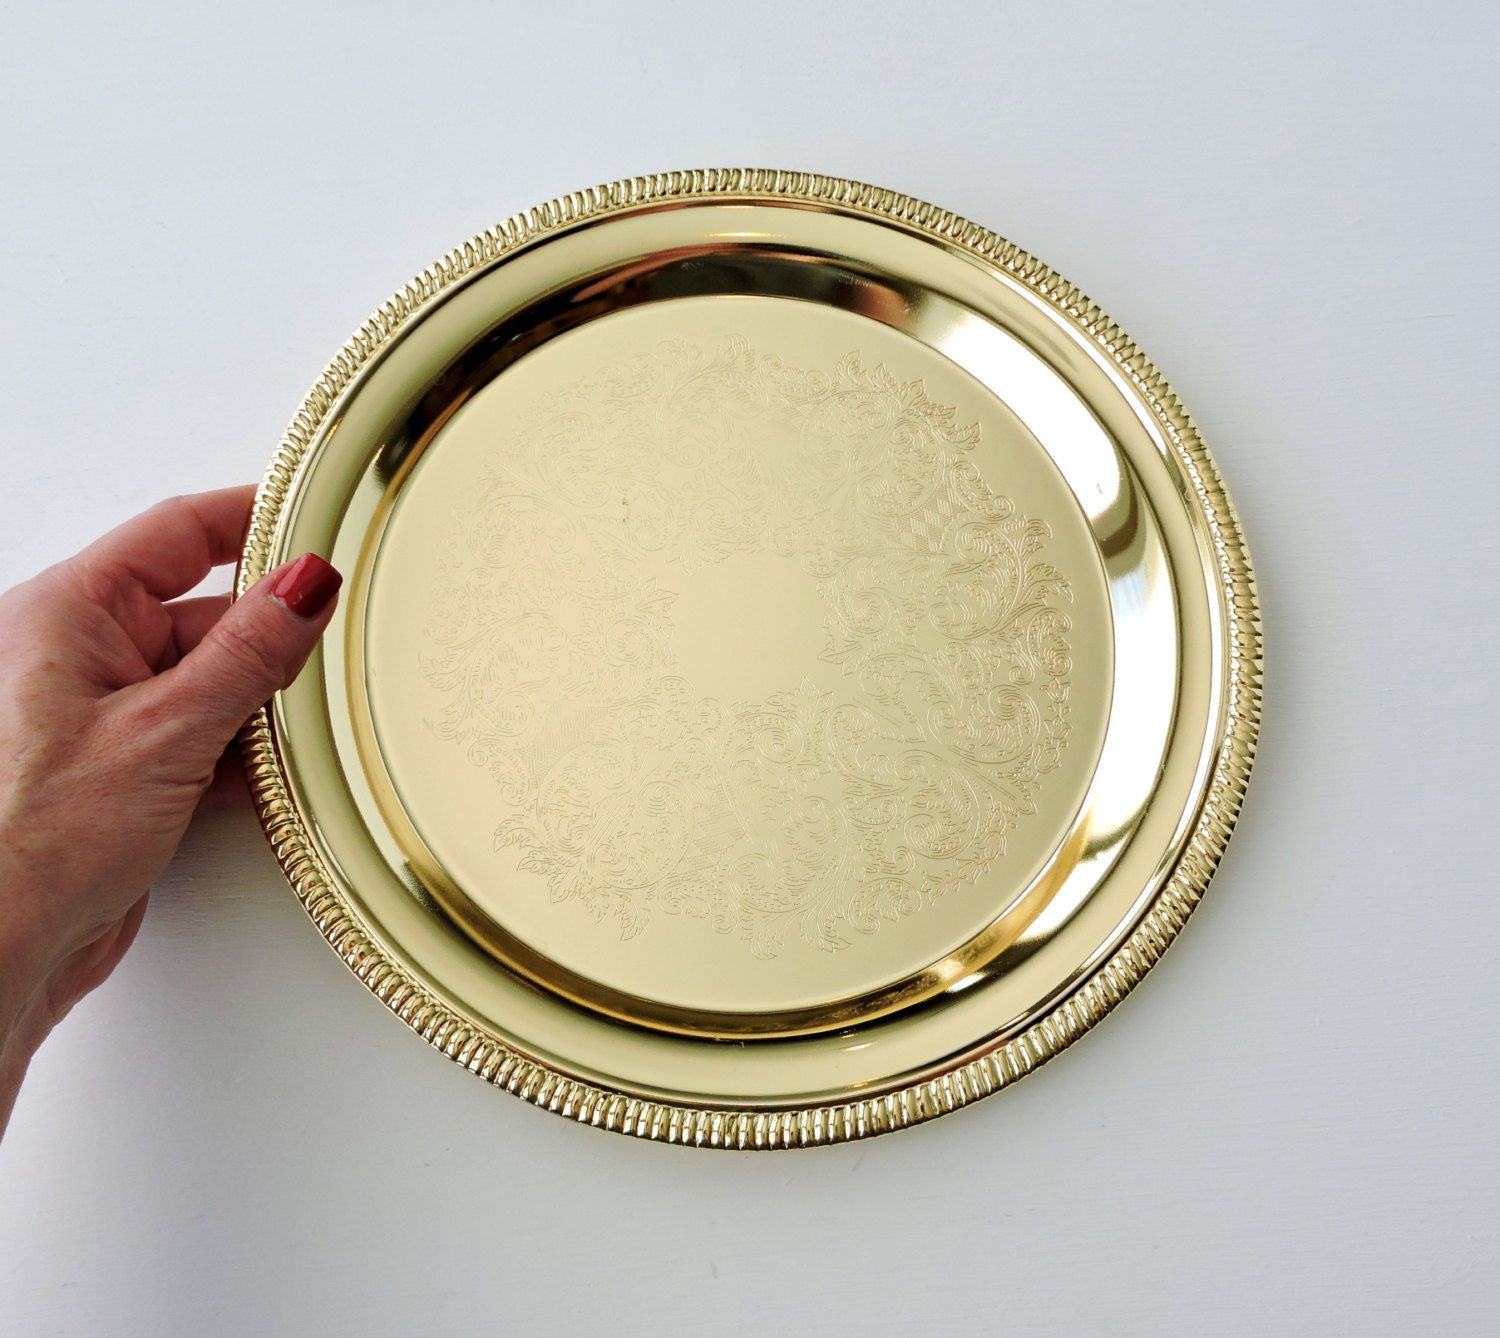 Vintage Round Gold Tray by Davco Silver, Engraved Serving Tray, Gold ...